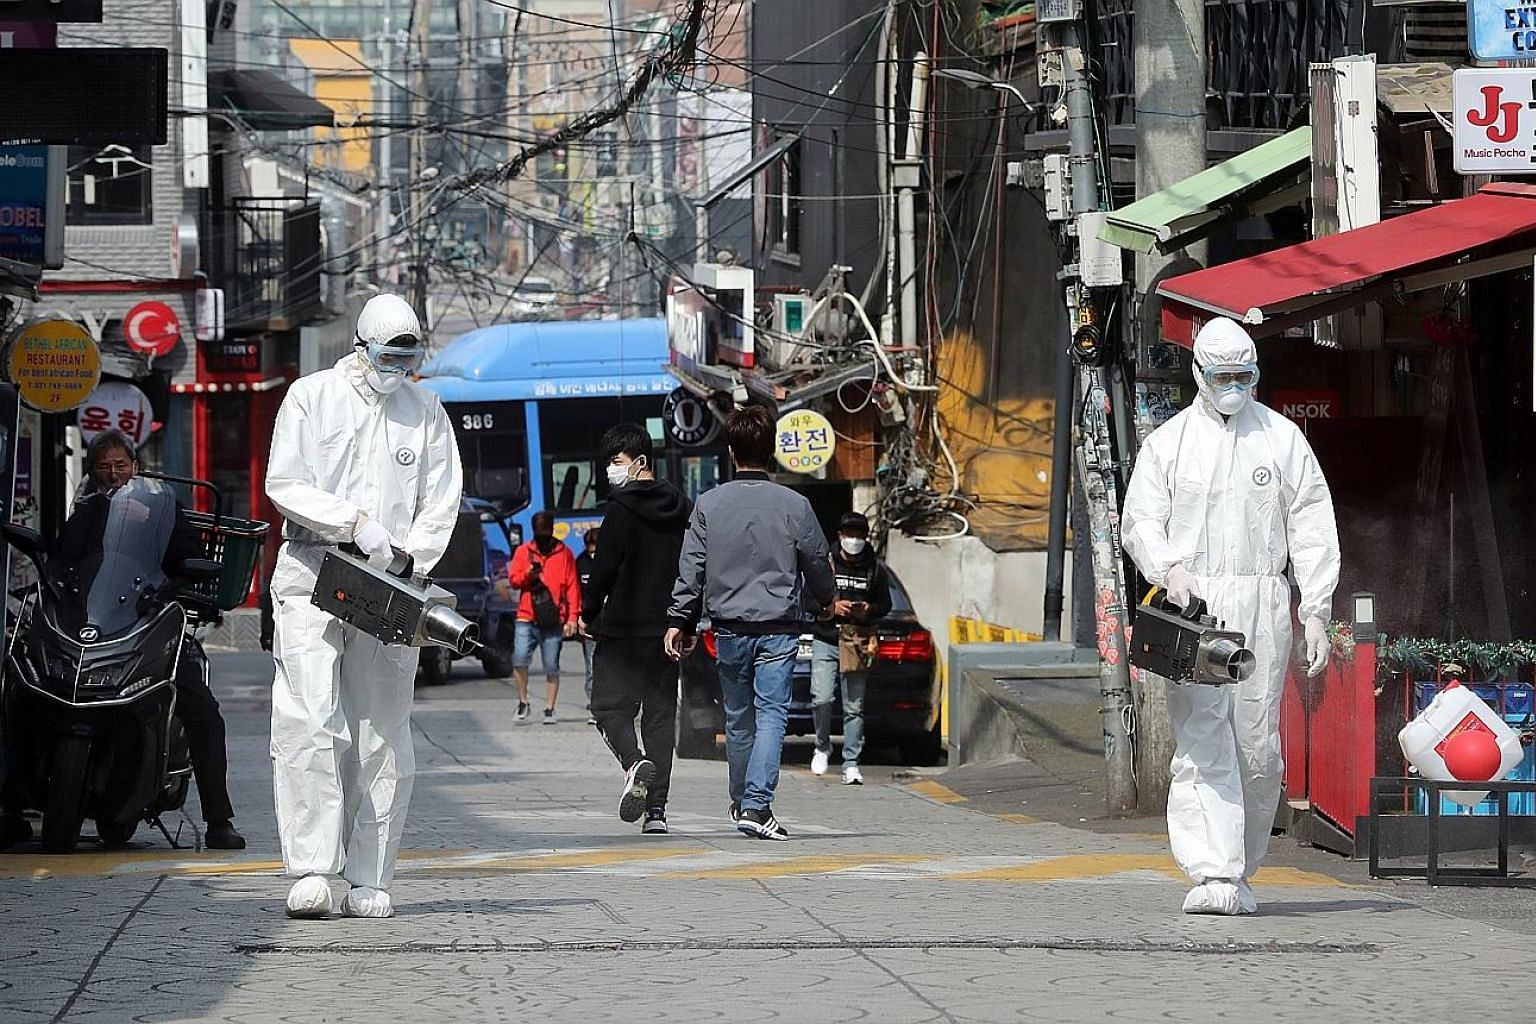 Workers spraying disinfectant in Seoul's Itaewon neighbourhood. A 29-year-old man who went club-hopping with a friend in Itaewon on May 2 tested positive for Covid-19 four days later. The number of cases that has emerged from that cluster shot up to